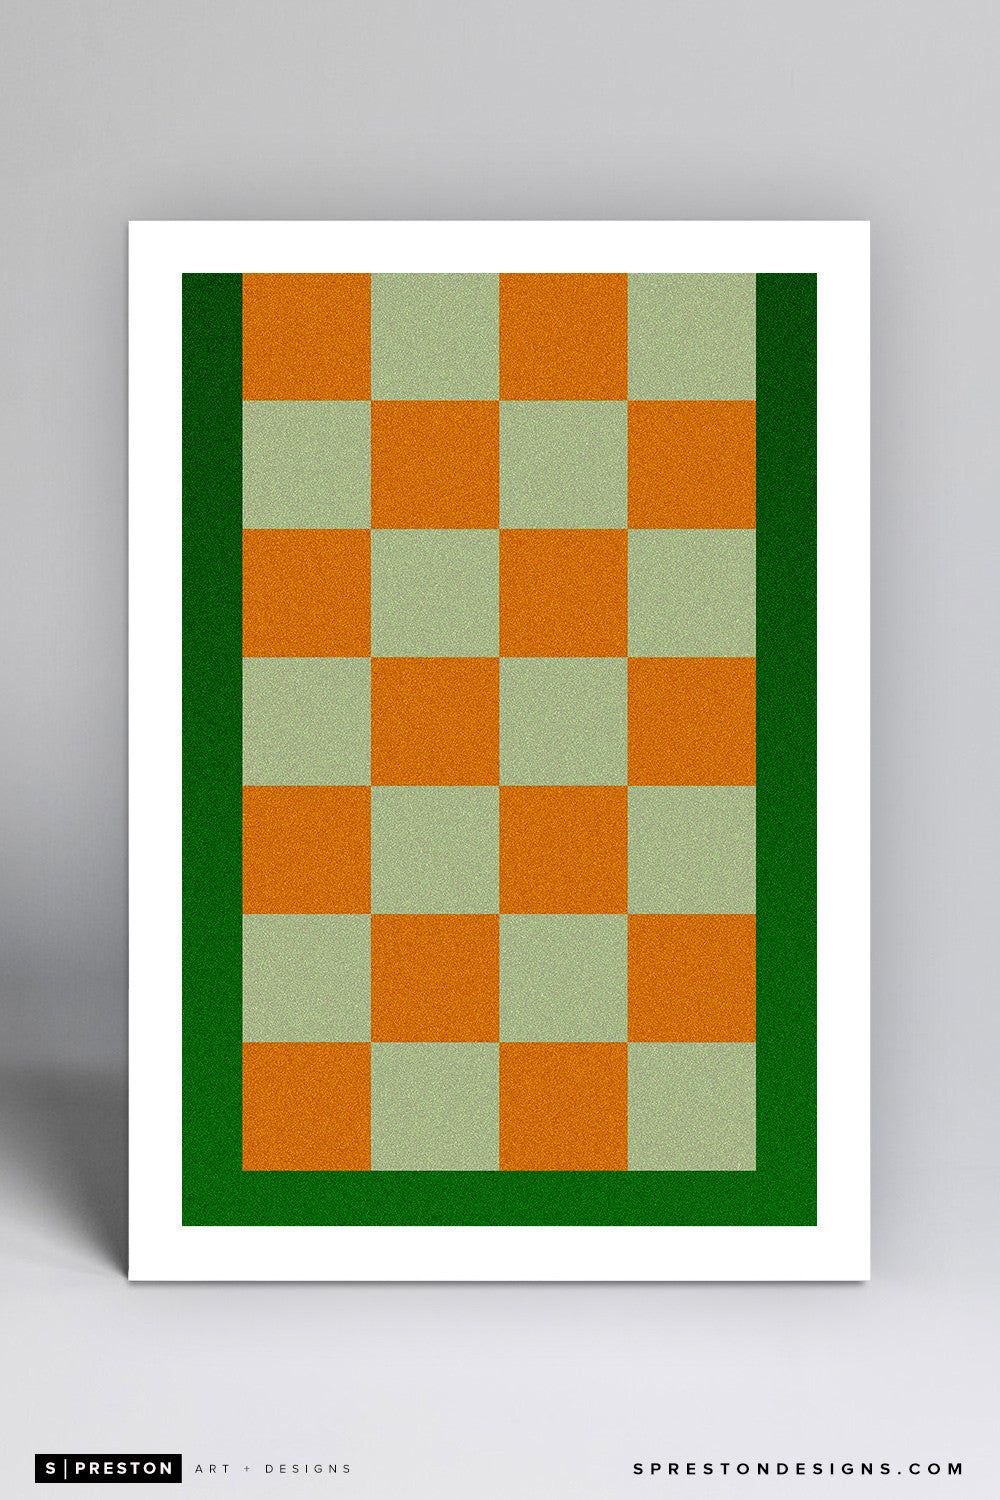 Minimalist Neyland Stadium - University of Tennessee - S. Preston